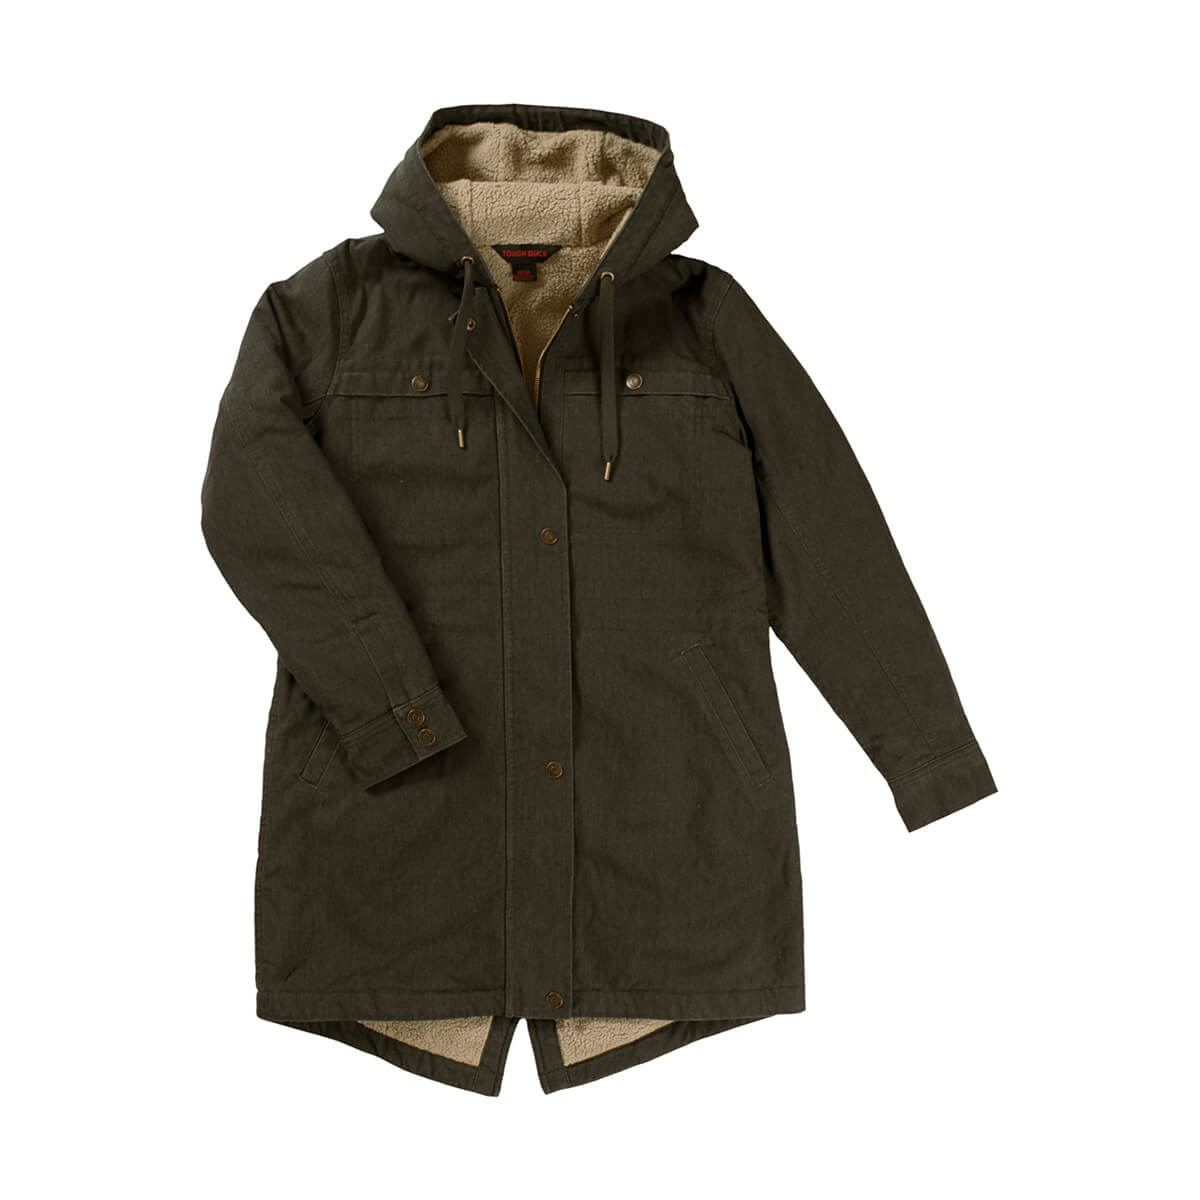 Tough Duck Women's Sherpa Lined Jacket - Olive